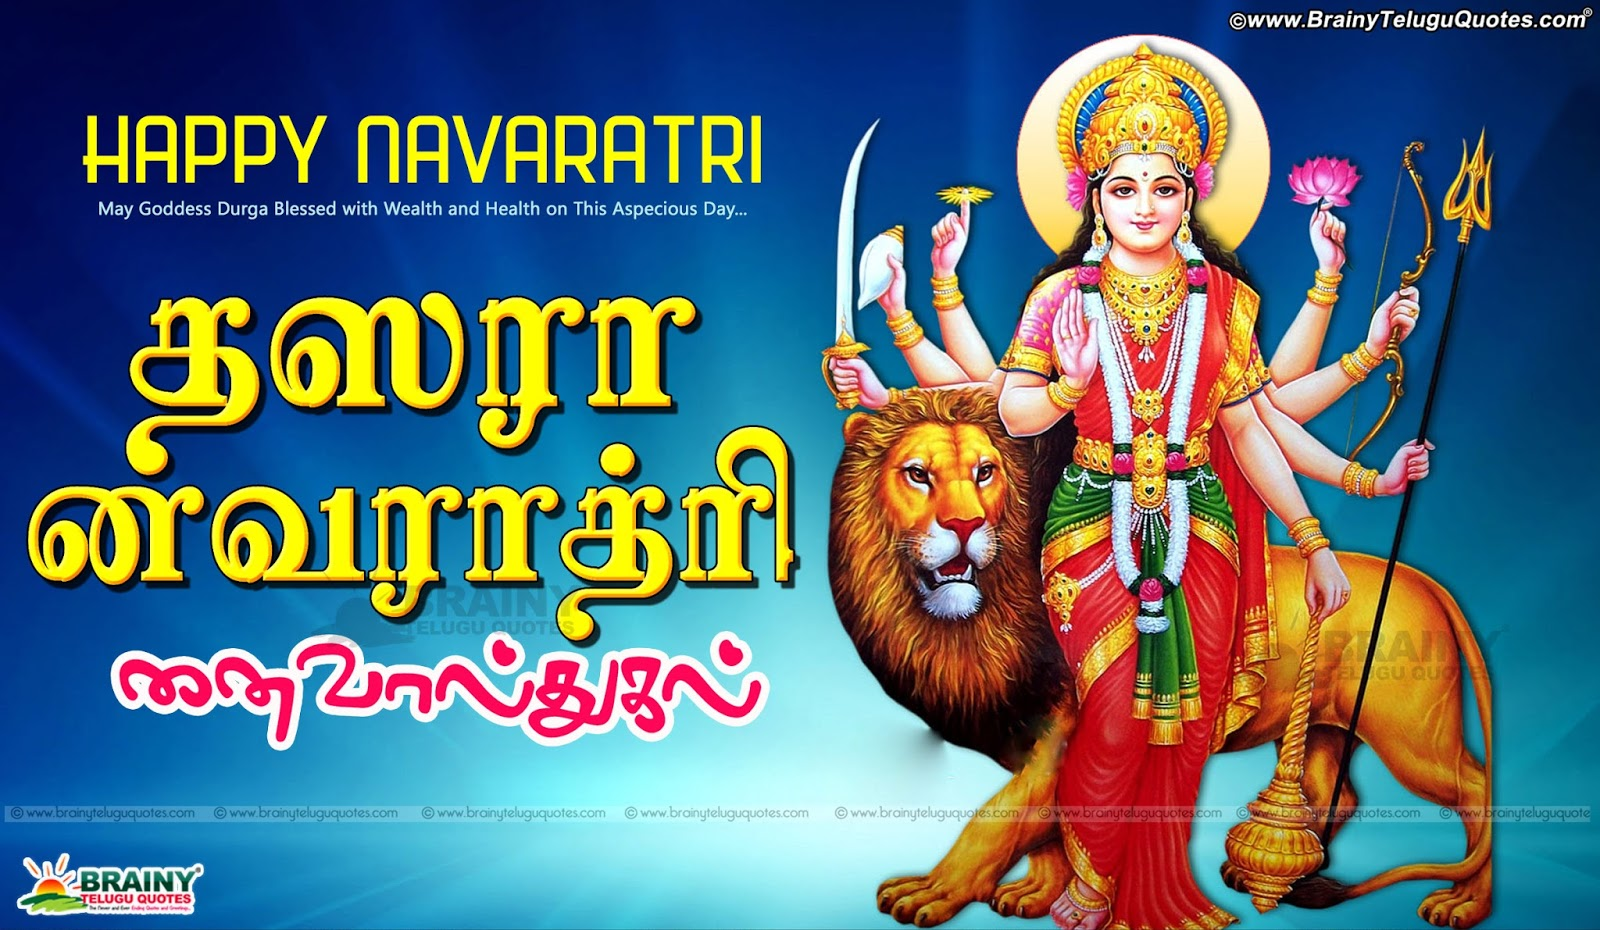 Happy Dasara 2016 SMS Quotes Prayer Poems in tamil ... Vadhdivas Chya Hardik Shubhechha Hd